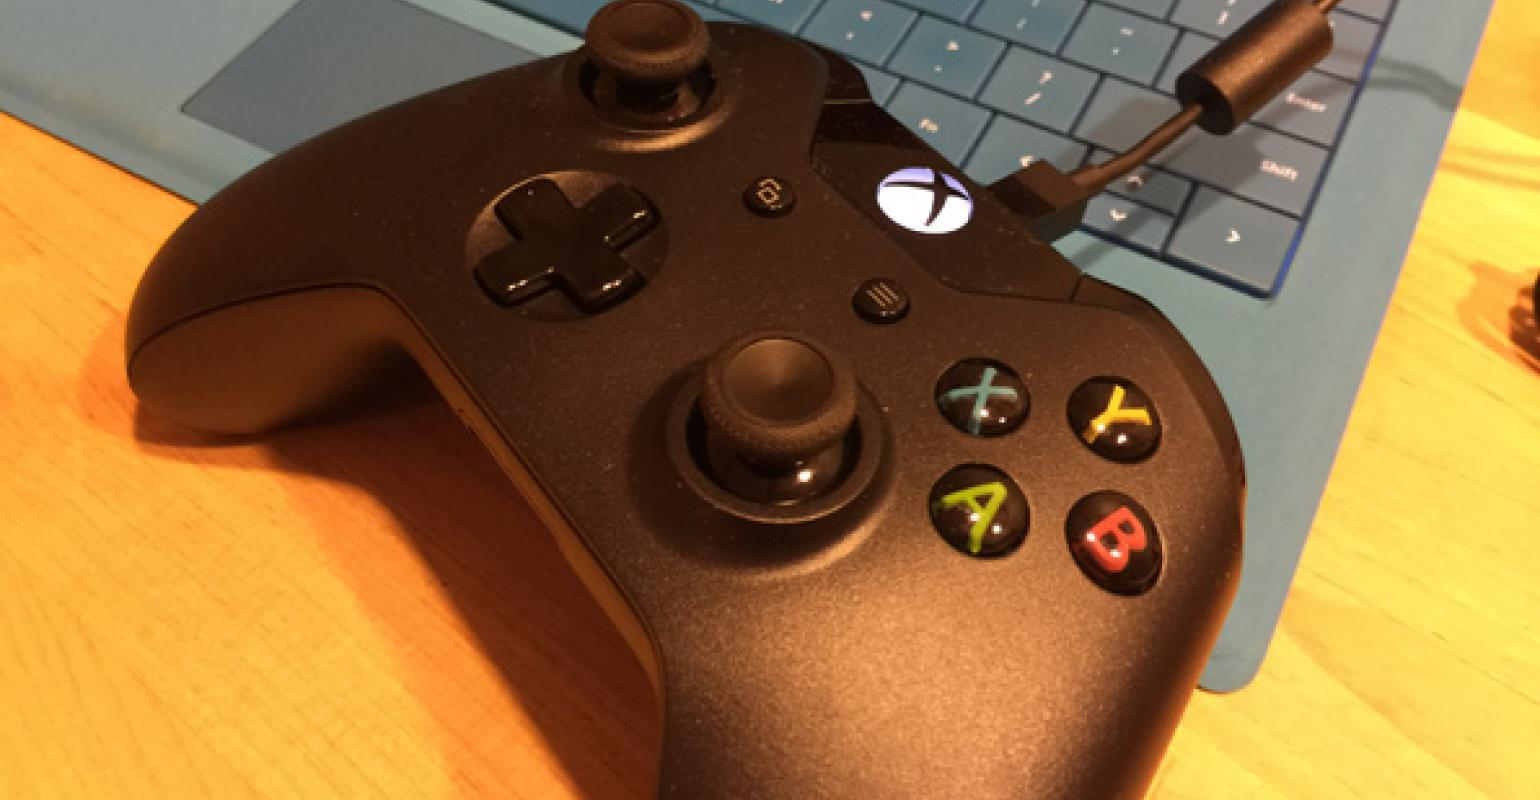 Hands-On with the Xbox One Controller + Cable for Windows